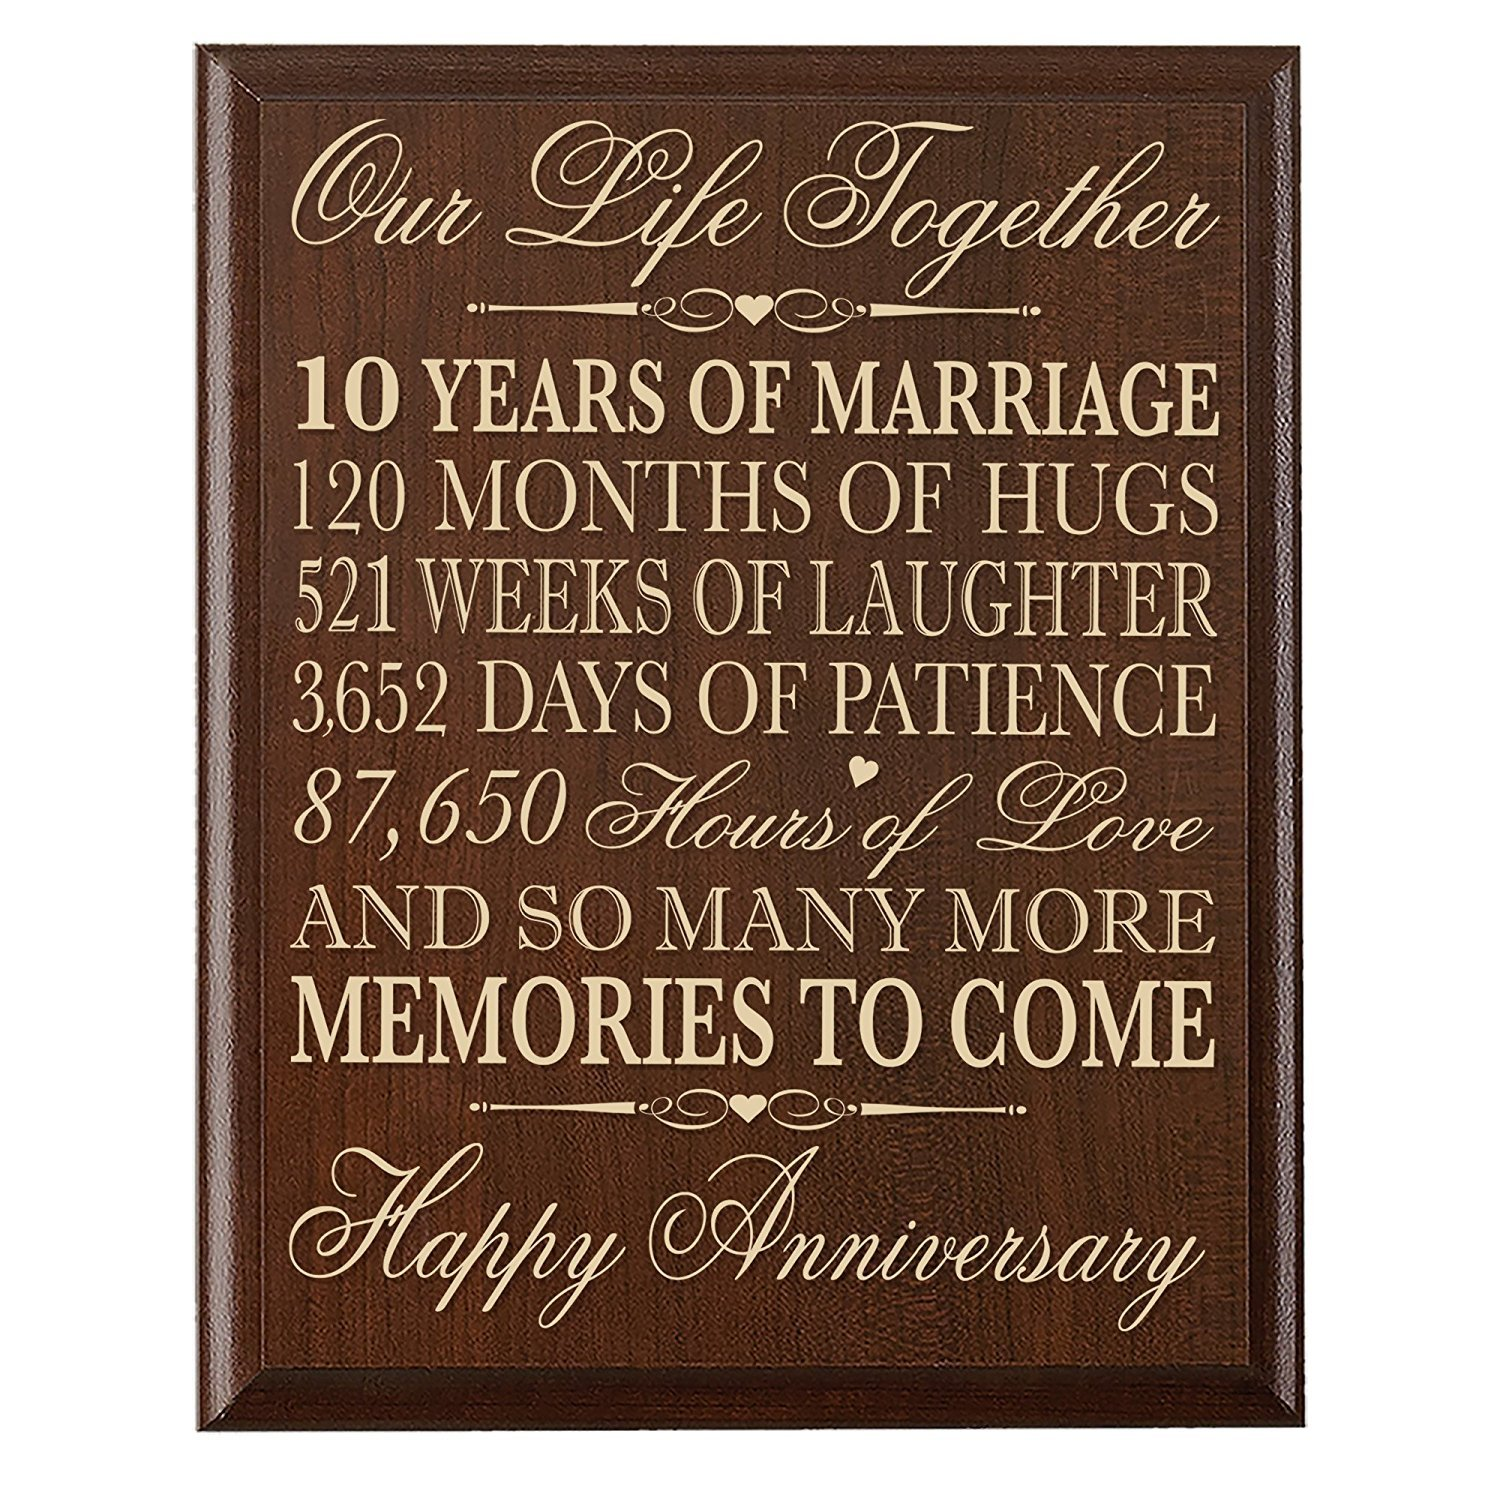 10 Years Wedding Anniversary Gift: 10th Anniversary Gifts For Him Under $60